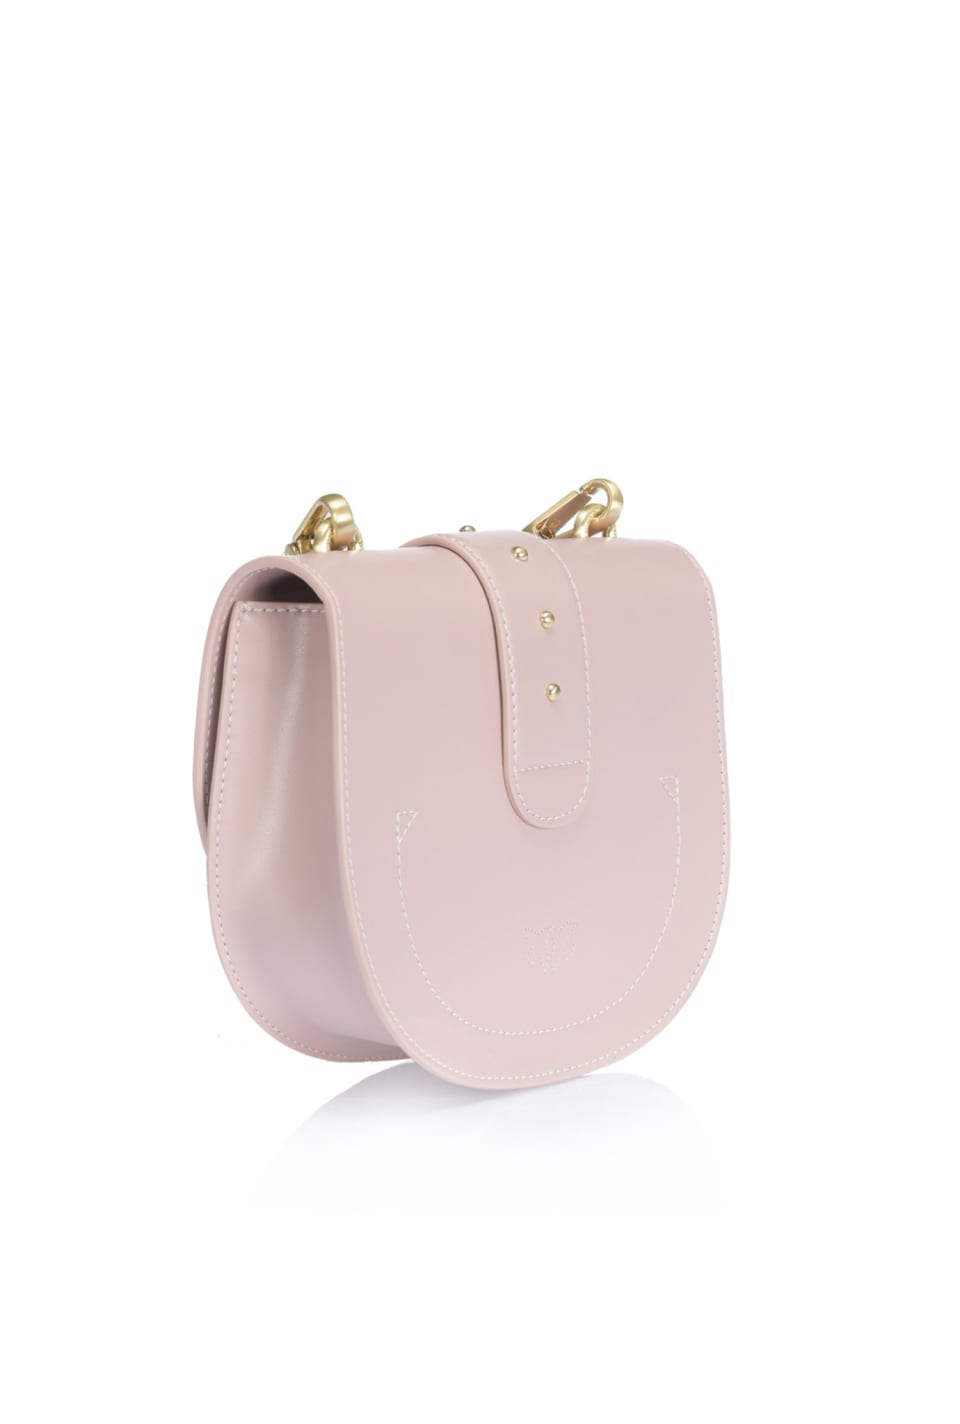 Simply Round Love Bag in leather